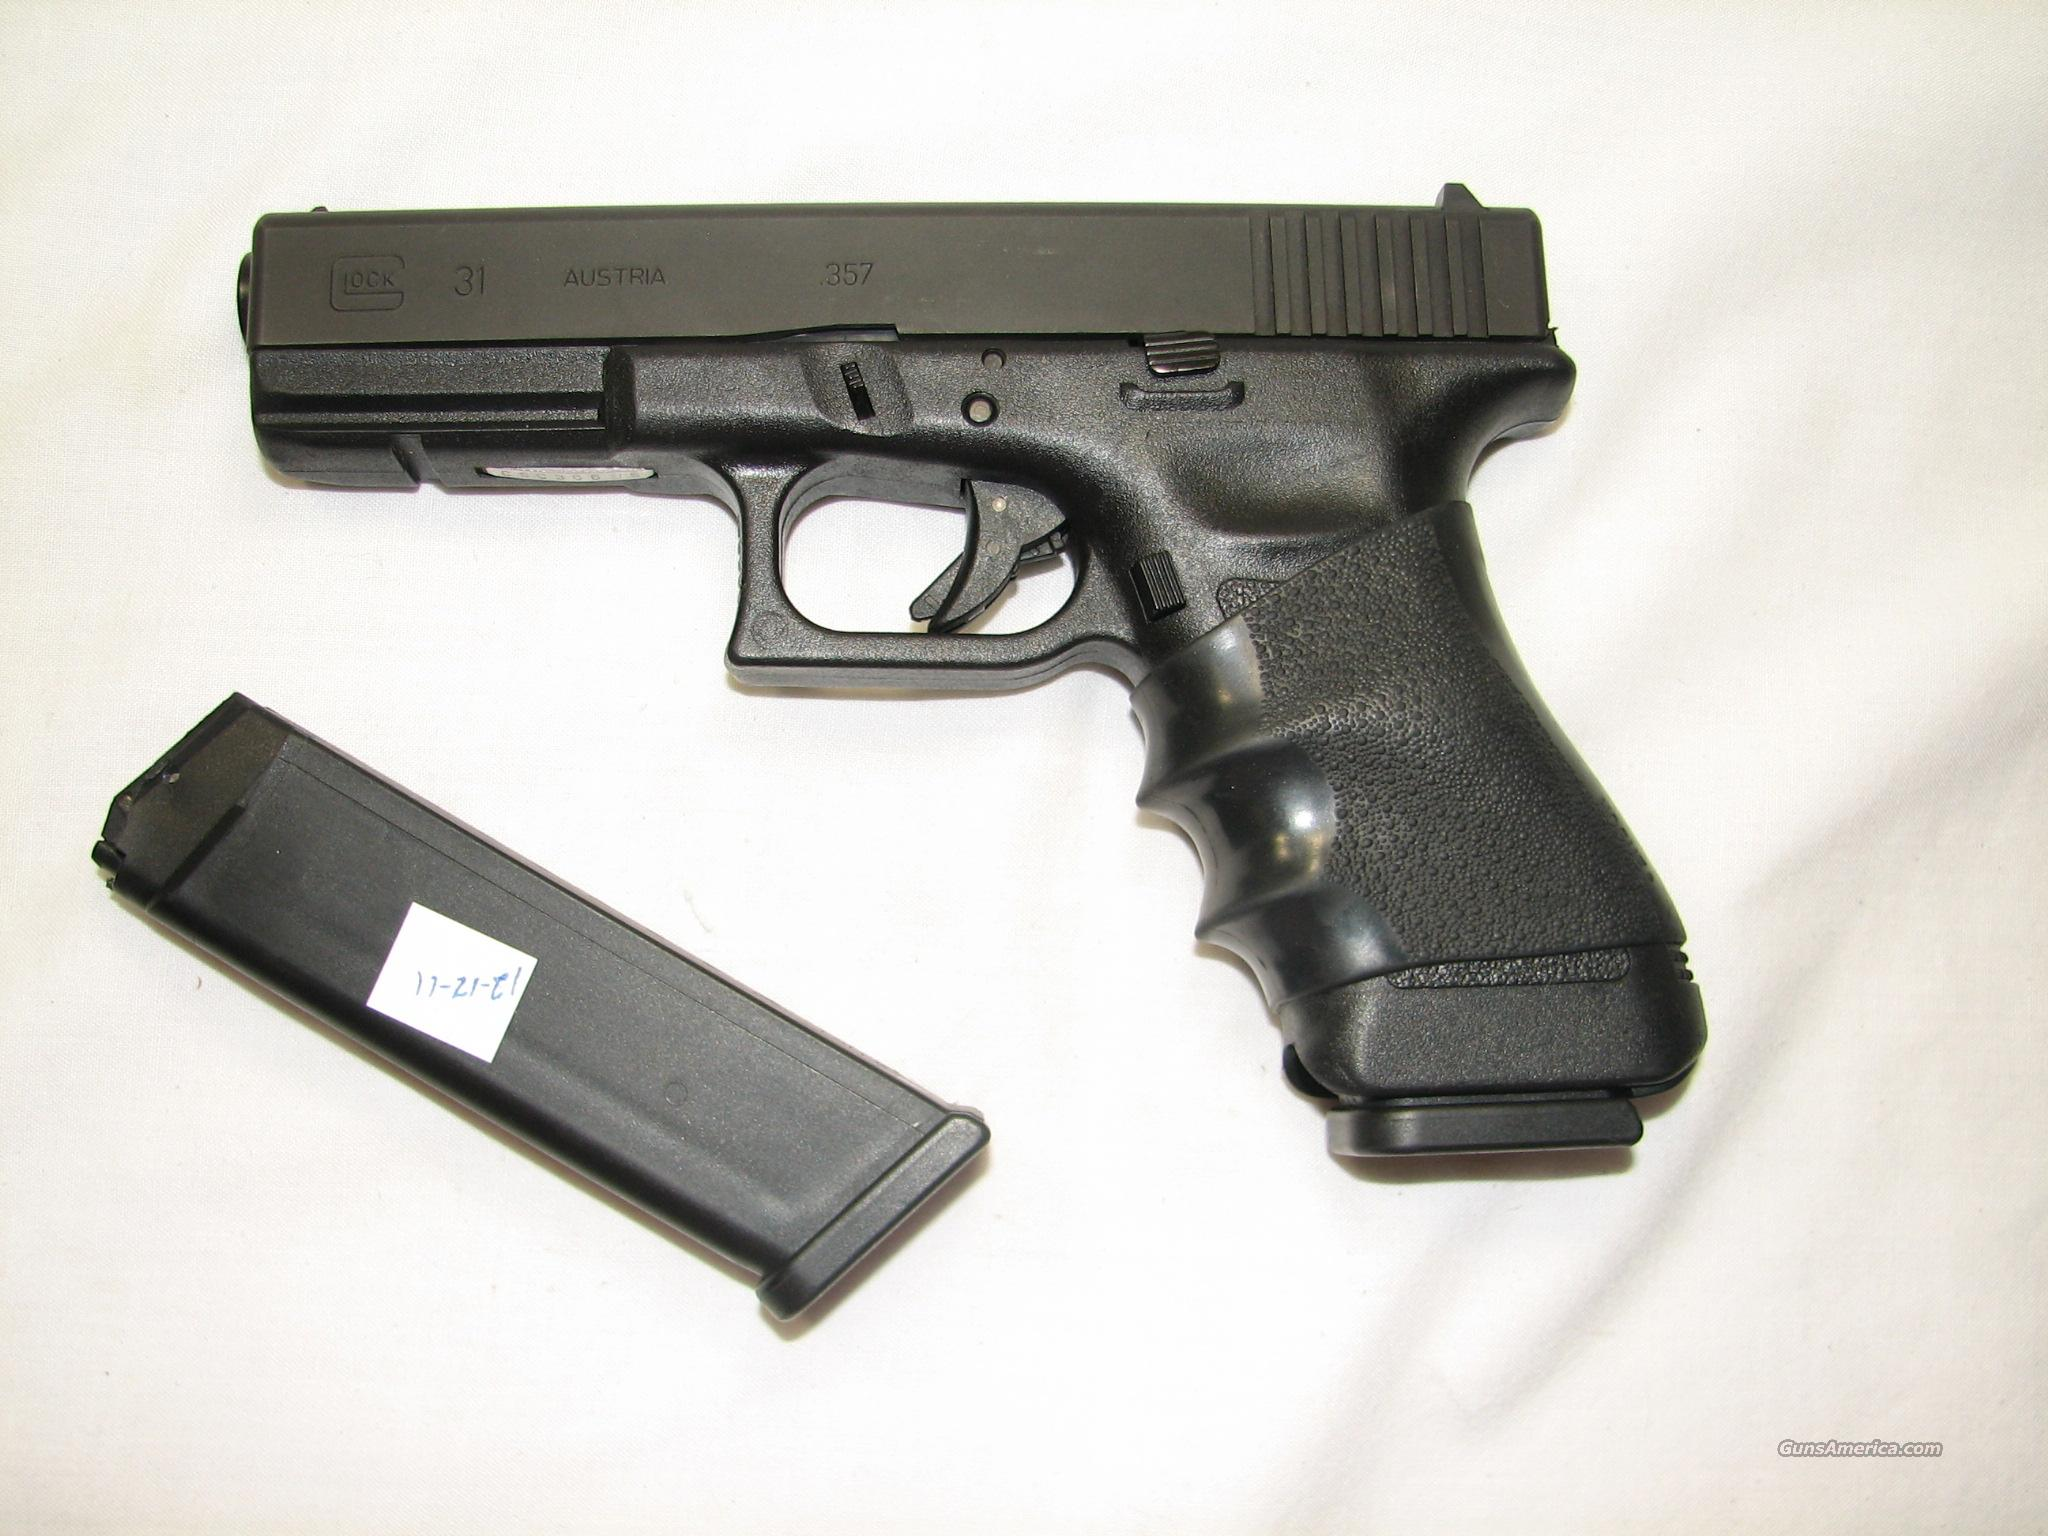 Glock 31 .357 Sig gently used with 2 mags  Guns > Pistols > Glock Pistols > 31/32/33